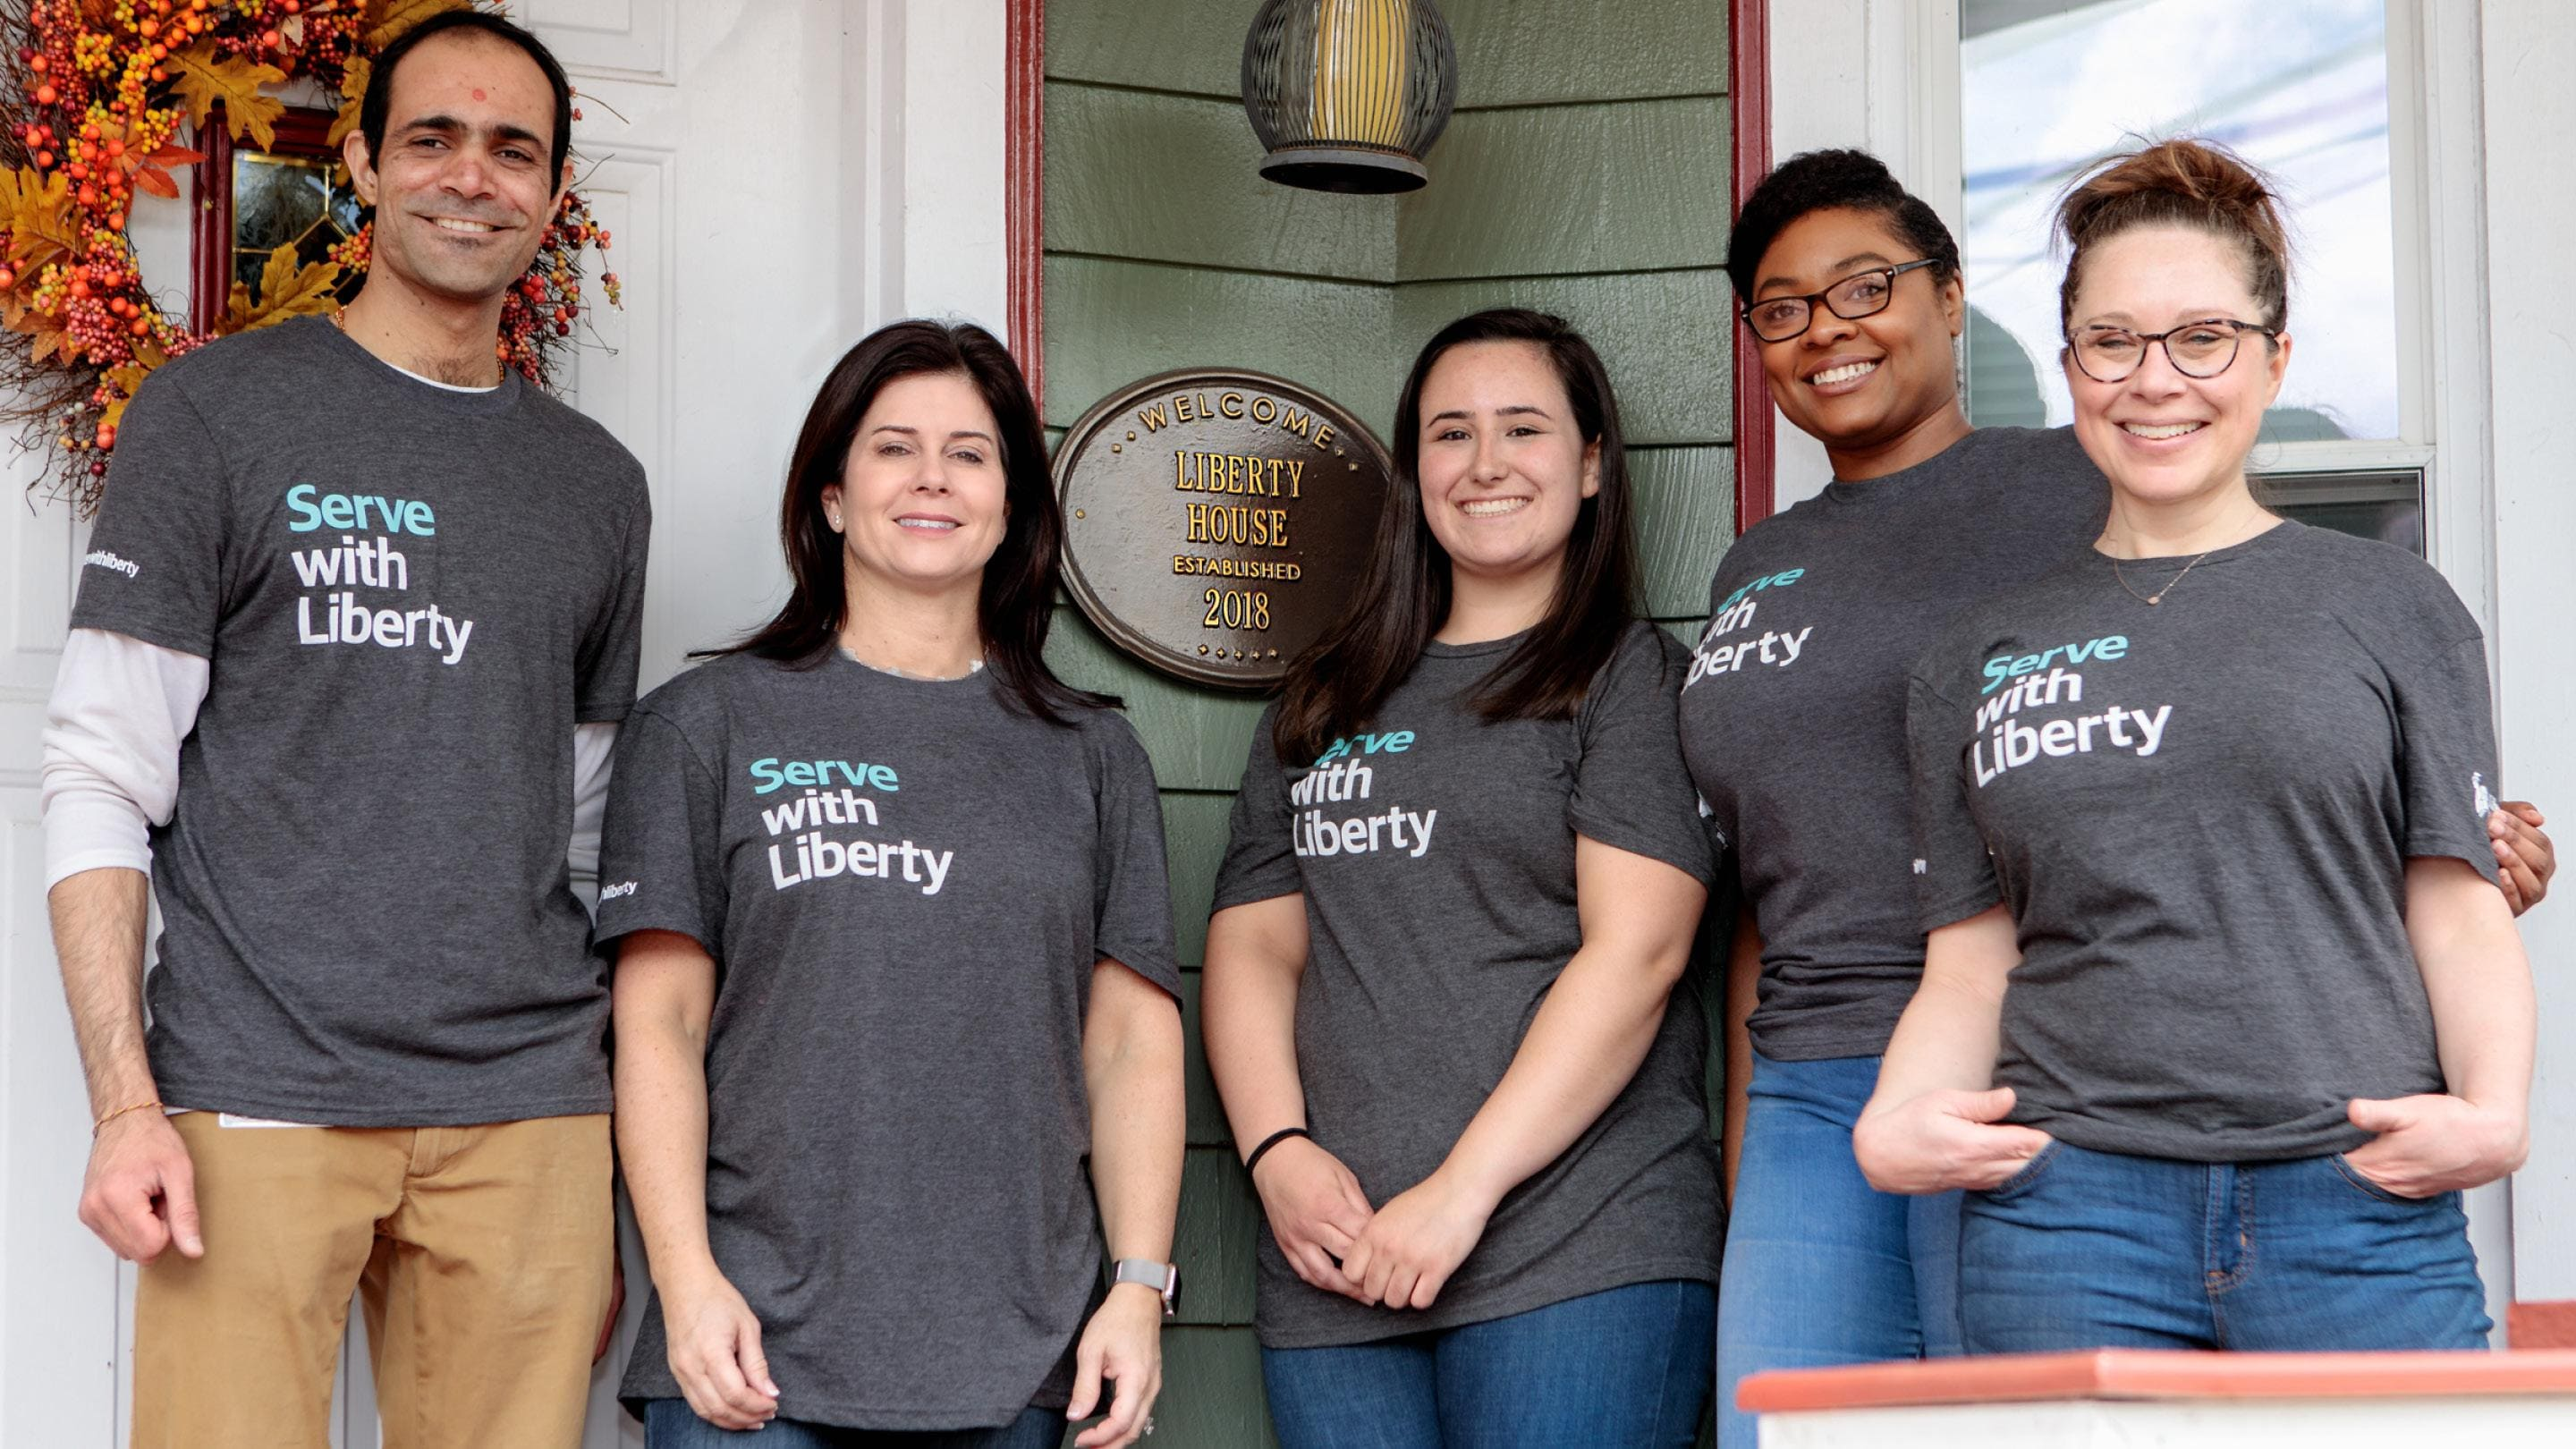 (slide 2 of 6) Liberty  Mutual Employees posing in Serve with Liberty shirts.